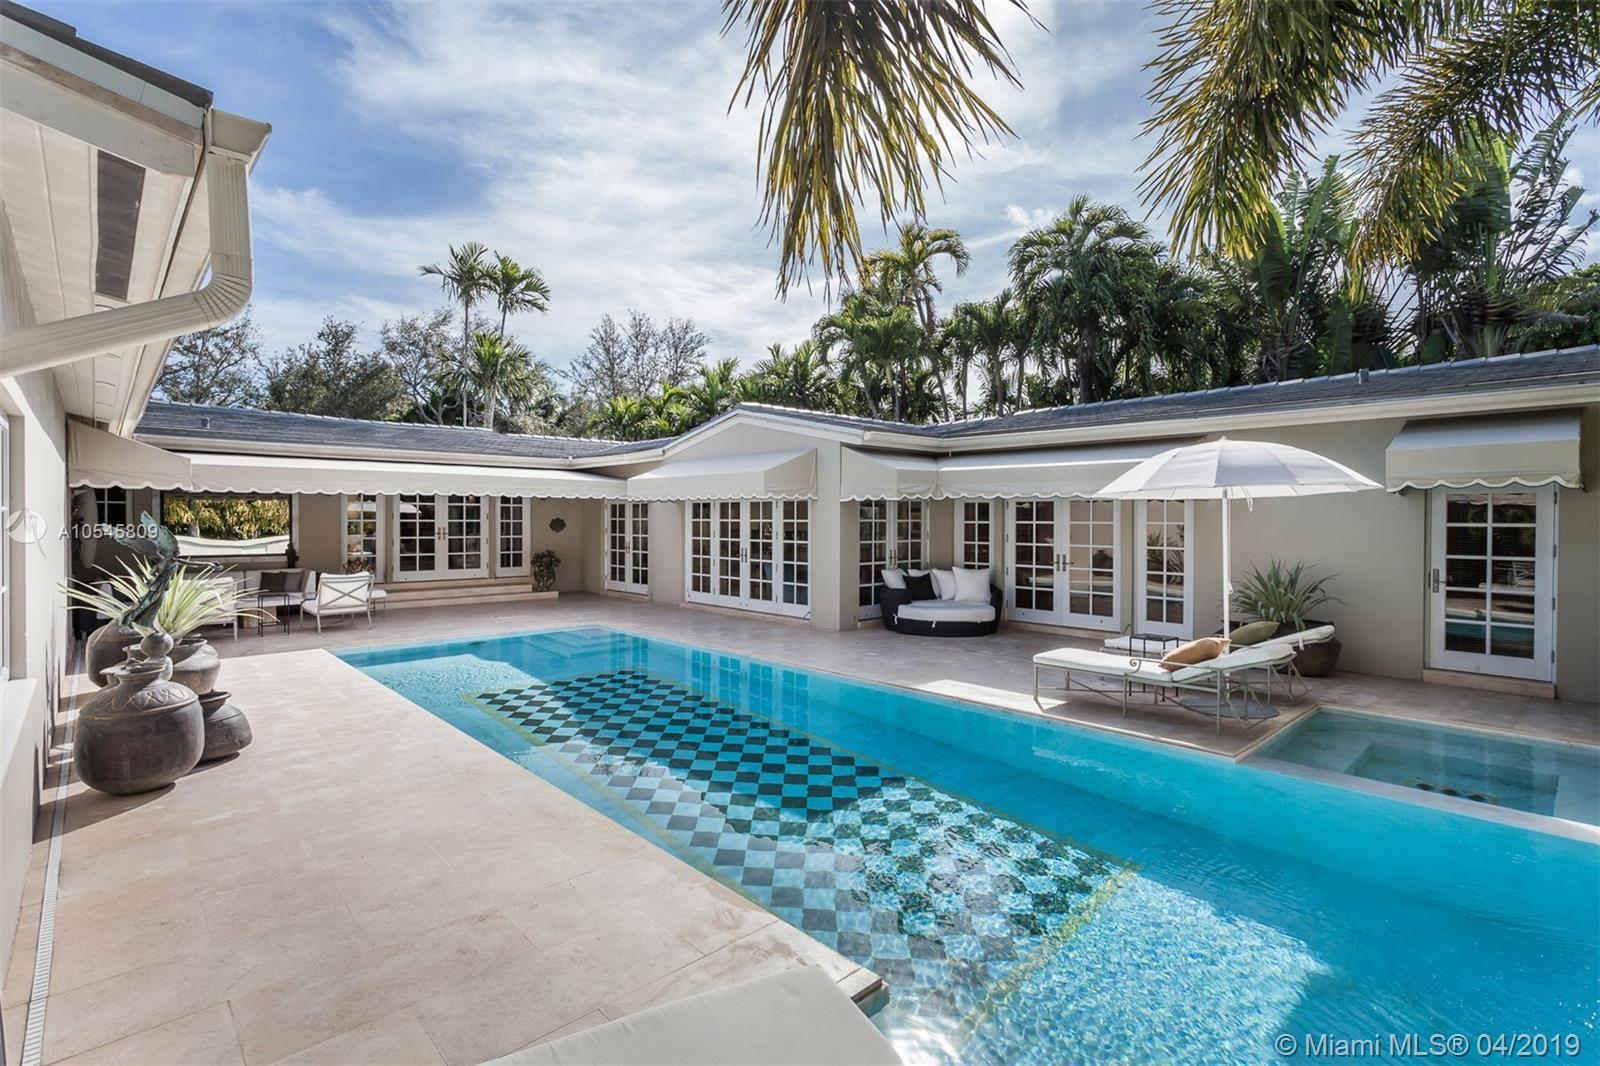 Live In The Coveted South Gables Neighborhood In This Renovated 3, 654 Square Foot Residence. This Spacious And Light Filled Home Was Freshly Painted In A Crisp Color Palette That Provides A Comfortable & Contemporary Experience. Foyer Entryway Introduces You To A Large Open Layout With Stunning Views Of The Outdoors From Every Room. This Spectacular Custom Home Boasts 4Br, (2 Master Suites, 1 Oversized Room, 1 Bd Conv. To Office), 3 Full+1 Half Ba. Features Include A Gourmet Chef+Ógé¼Gäós Kitchen, Formal Dining Room, Hardwood And Stone Flooring. French Doors Lead To An Outdoor Oasis With Covered Dining, A Marble Pool/Spa W/ Waterfall, Complete With Led Lighting And Smart Controls. The Home Is Nestled On A Lush 11, 250 Square Foot Lot With Mature Landscaping. Full Roof Replacement In 2019.